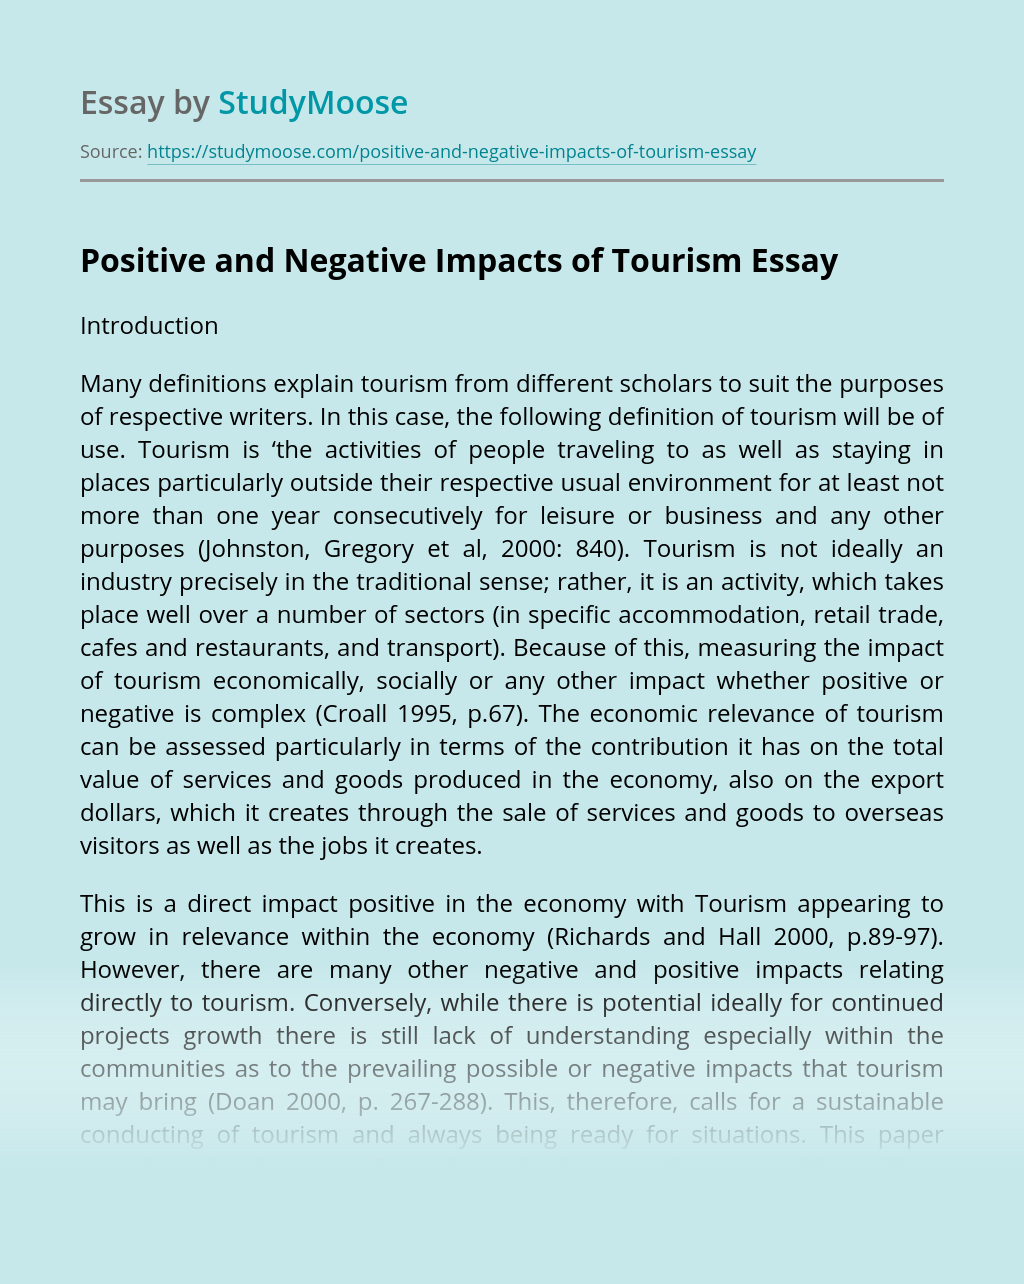 Positive and Negative Impacts of Tourism